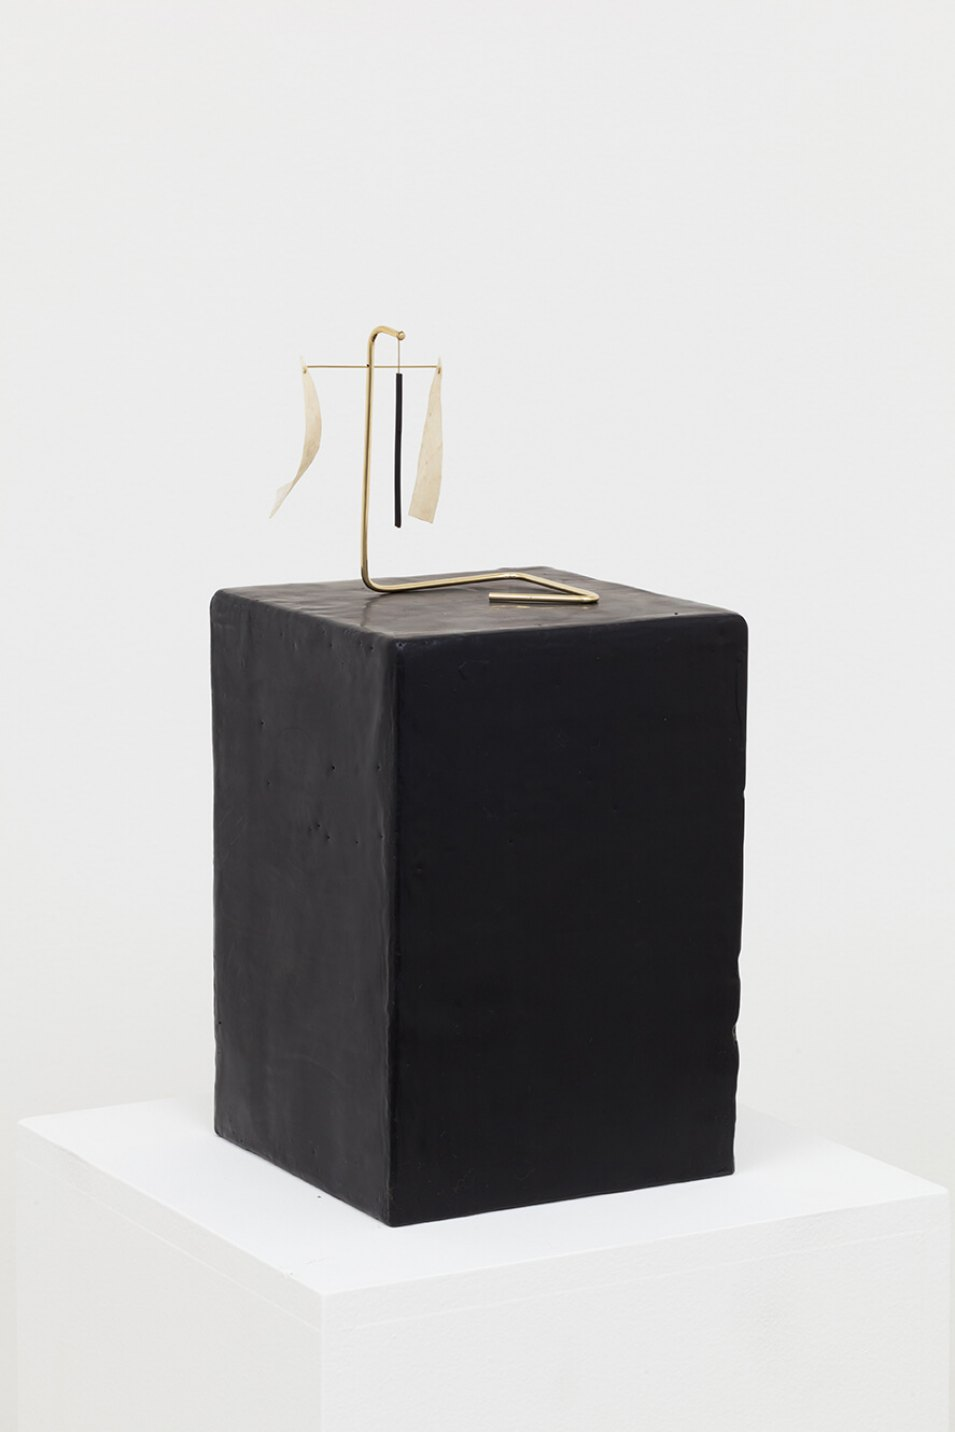 Paloma Bosquê, <em>Piece #2</em>, 2016, dyed bee wax shaped in block form, brass rods and charcoal and goat leather, 24 × 17 × 17 cm (block) | 11,5 × 13 × 8 cm (piece) - Mendes Wood DM